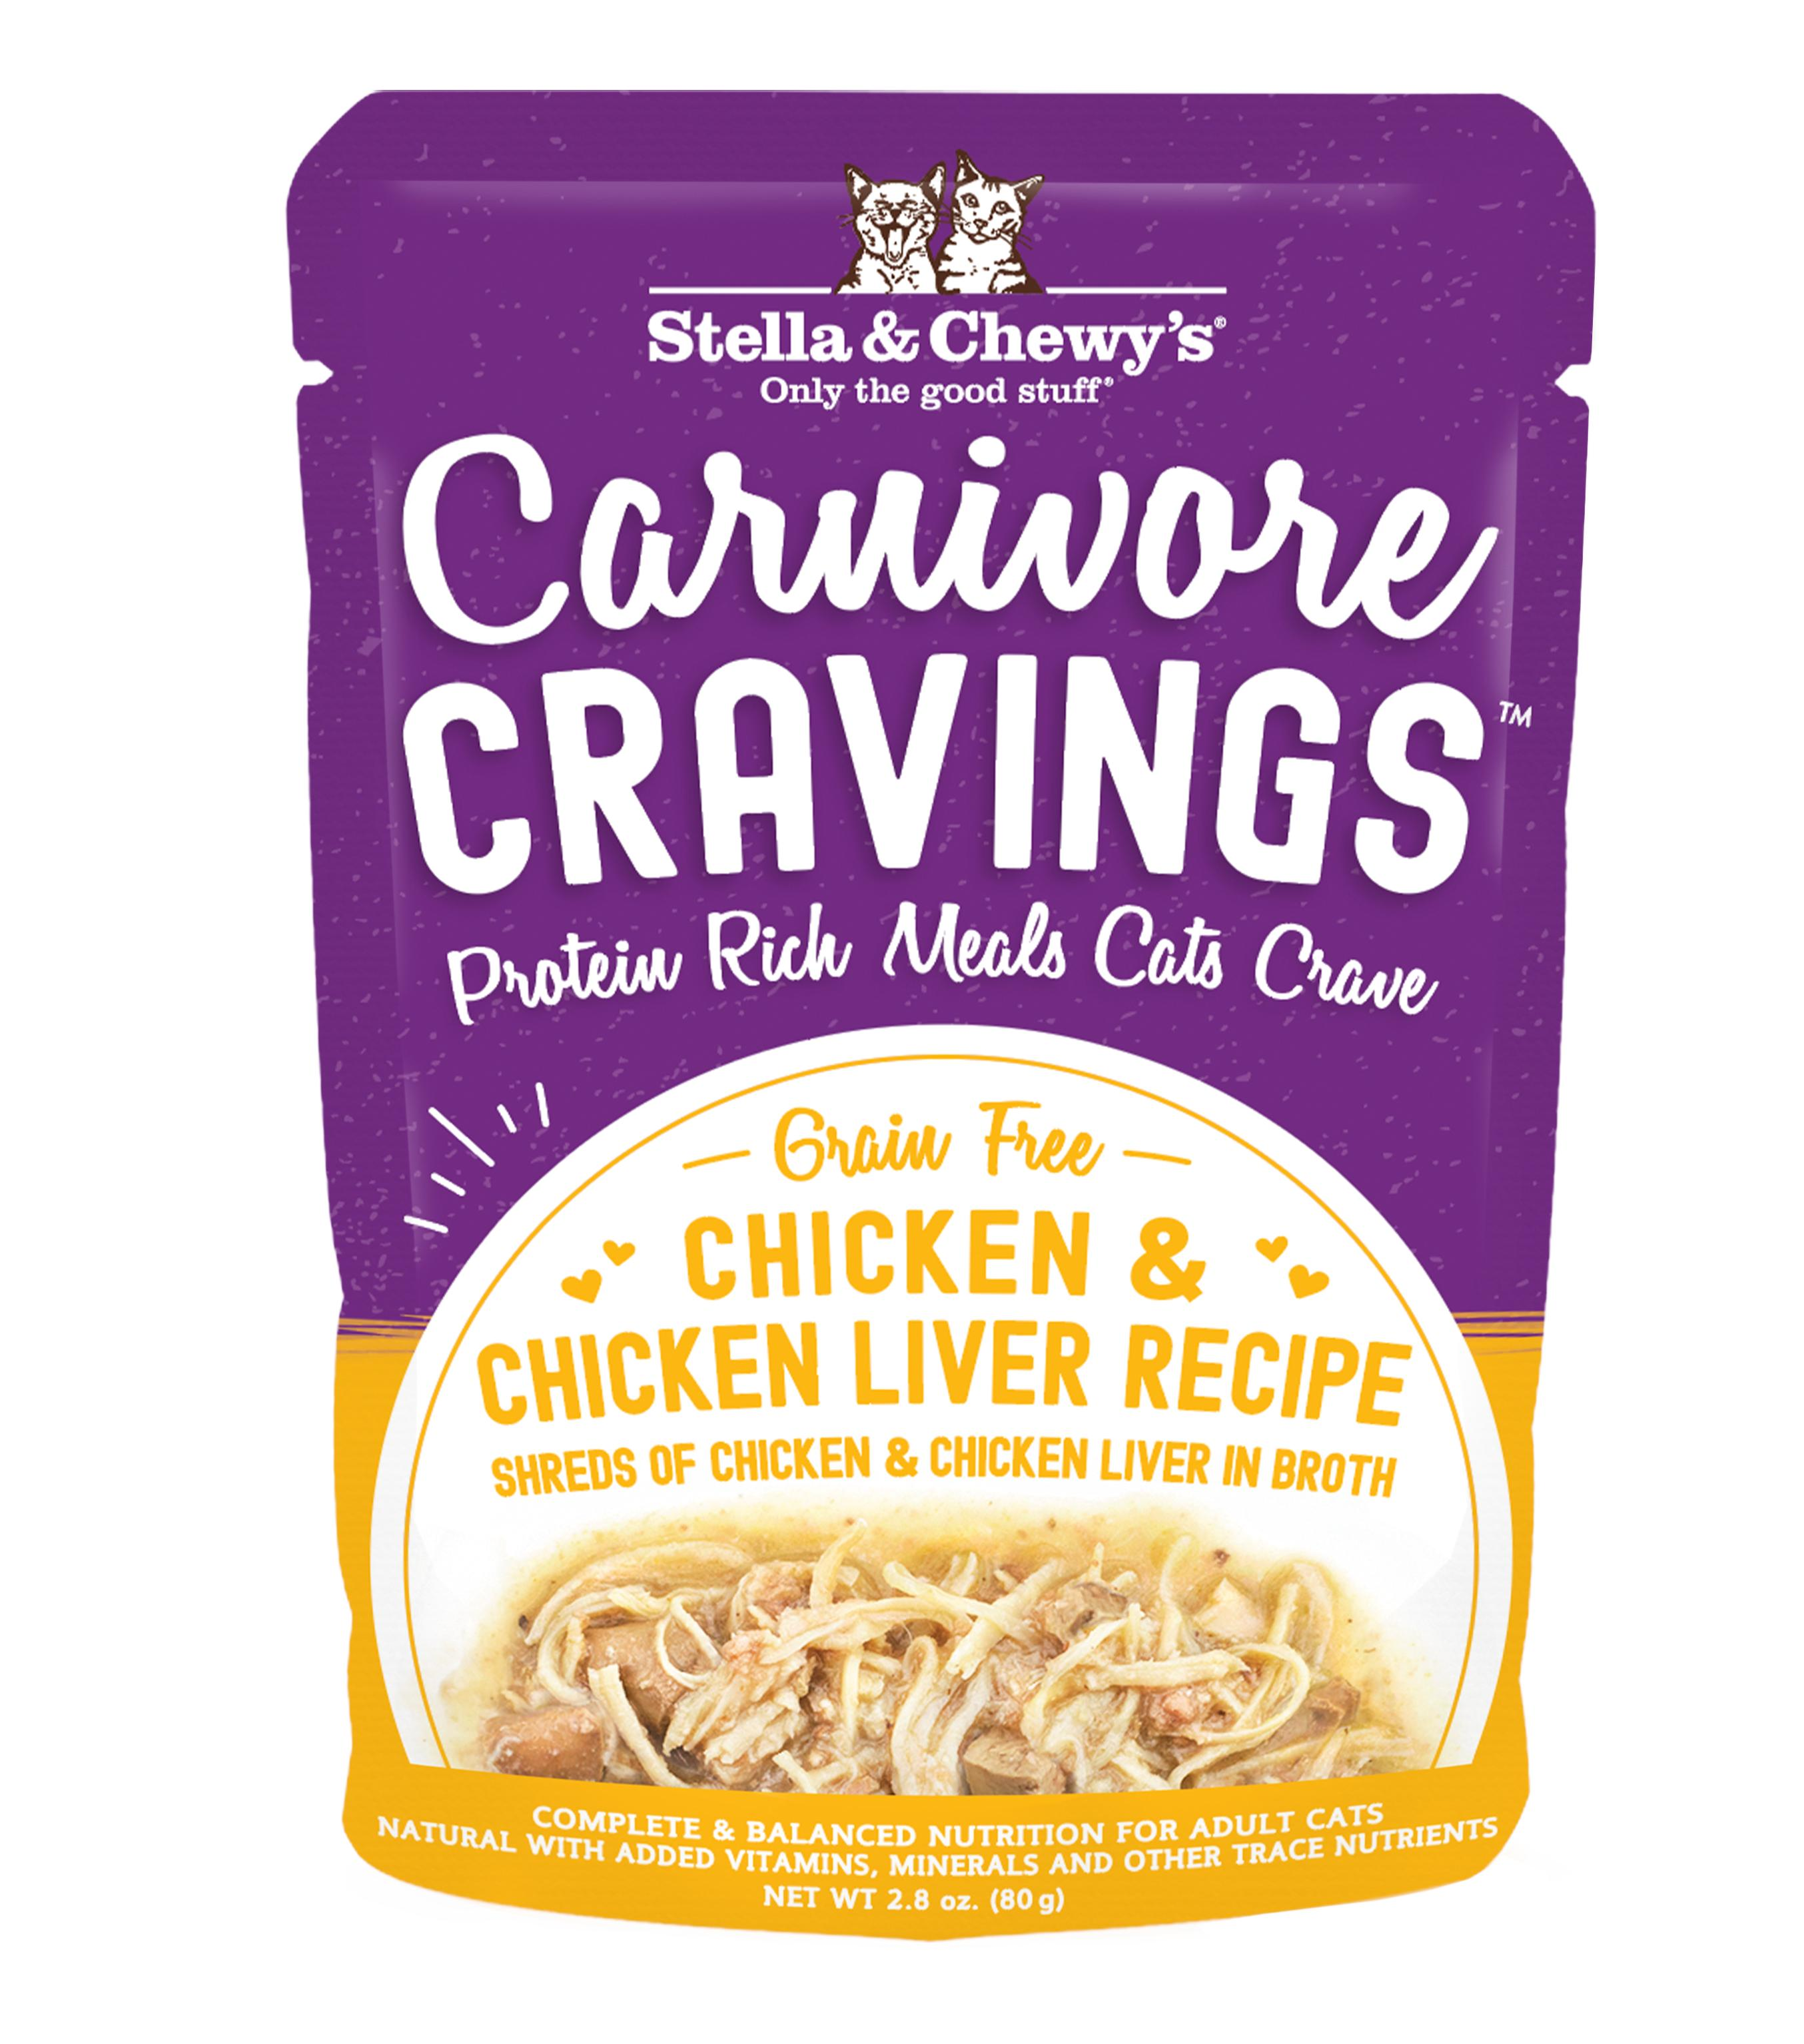 Stella & Chewy's Carnivore Cravings Chicken & Chicken Liver Wet Cat Food, 2.8-oz pouch